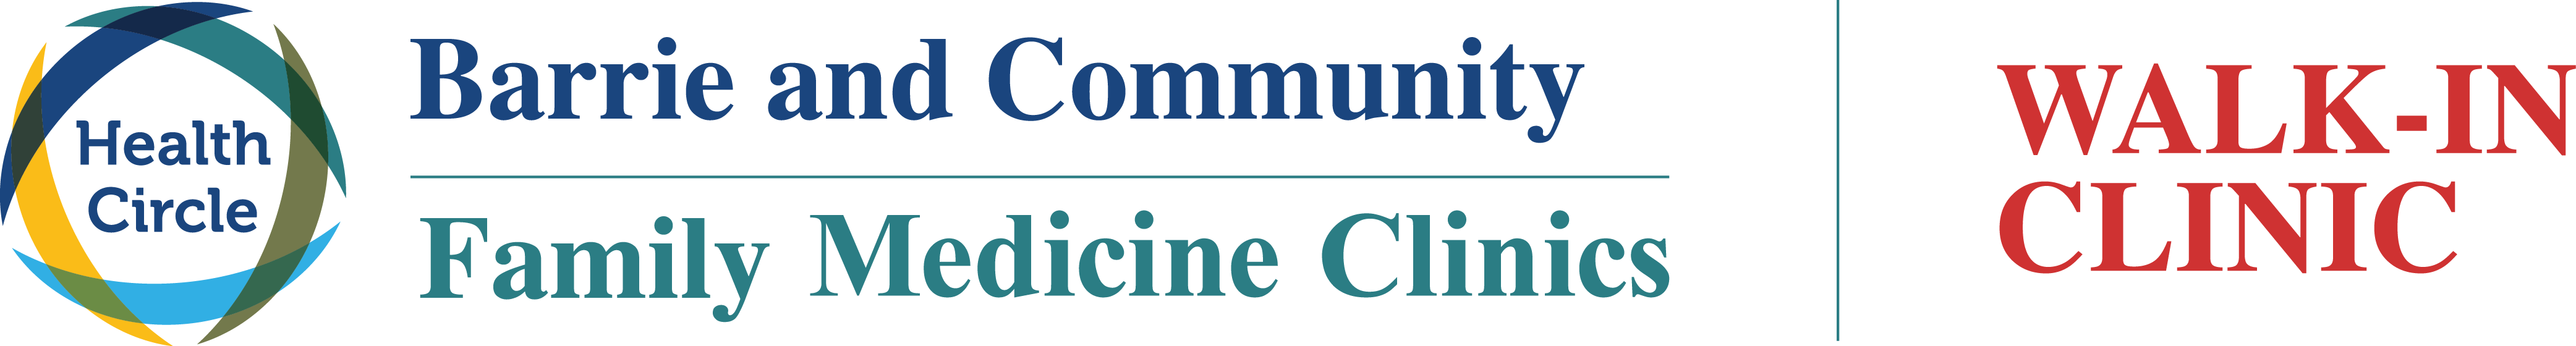 Home - Barrie and Community Family Medicine Clinic